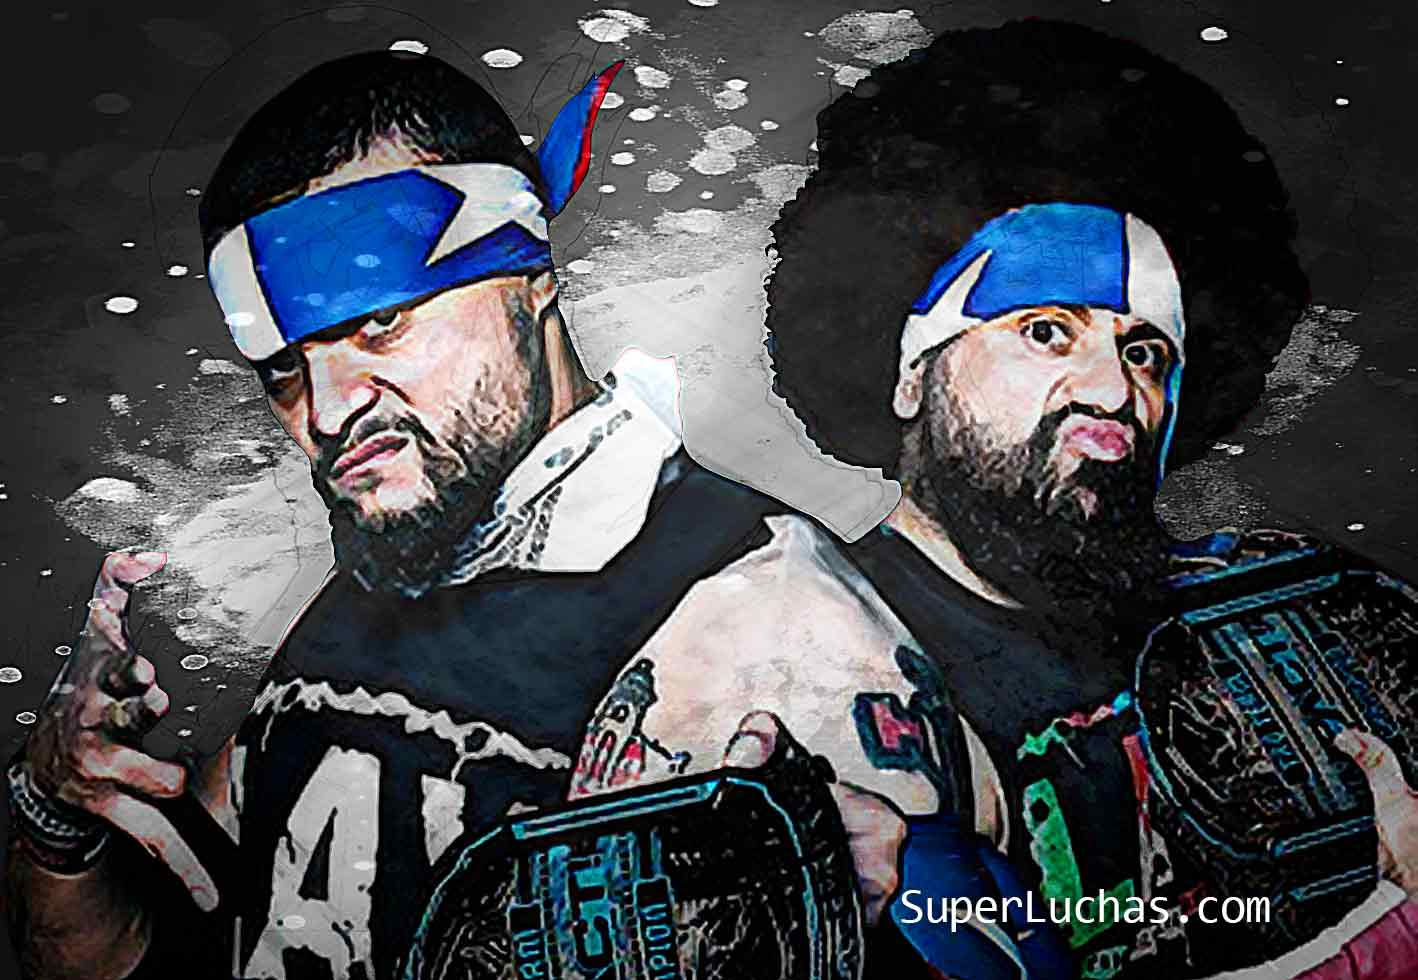 LAX / SuperLuchas.com